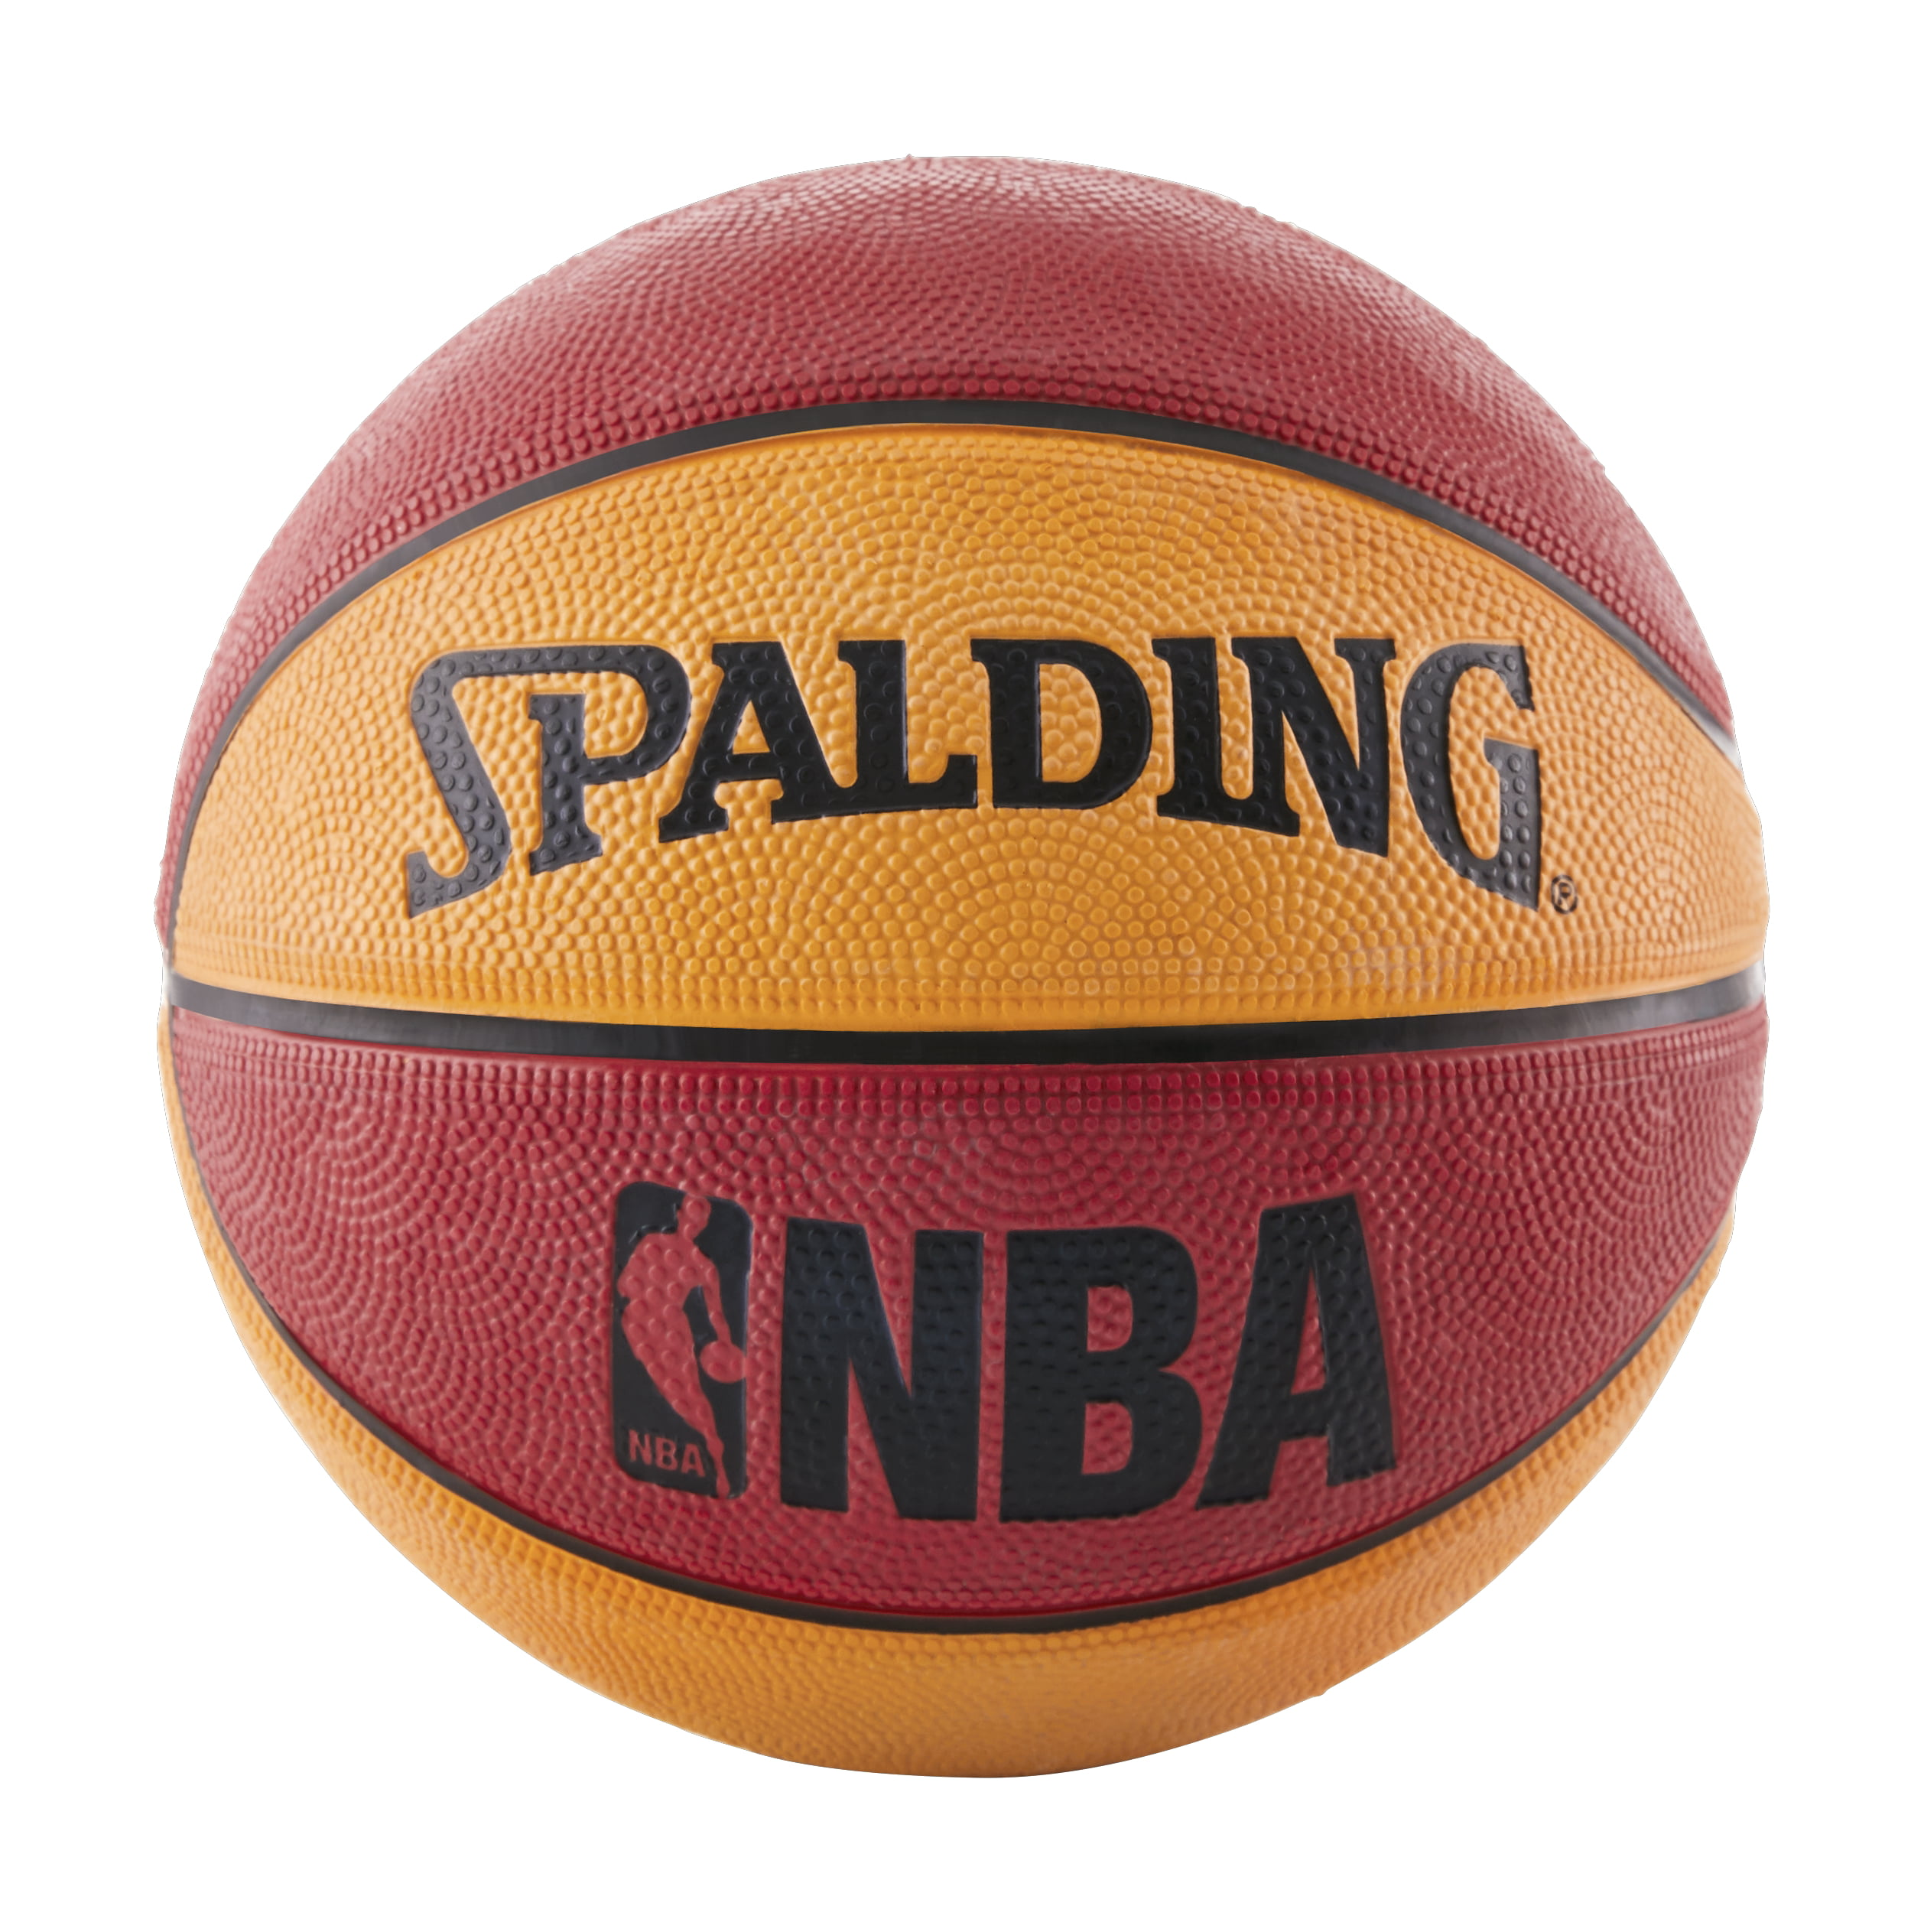 Spalding nba mini 22 basketball red orange - Spalding basketball images ...